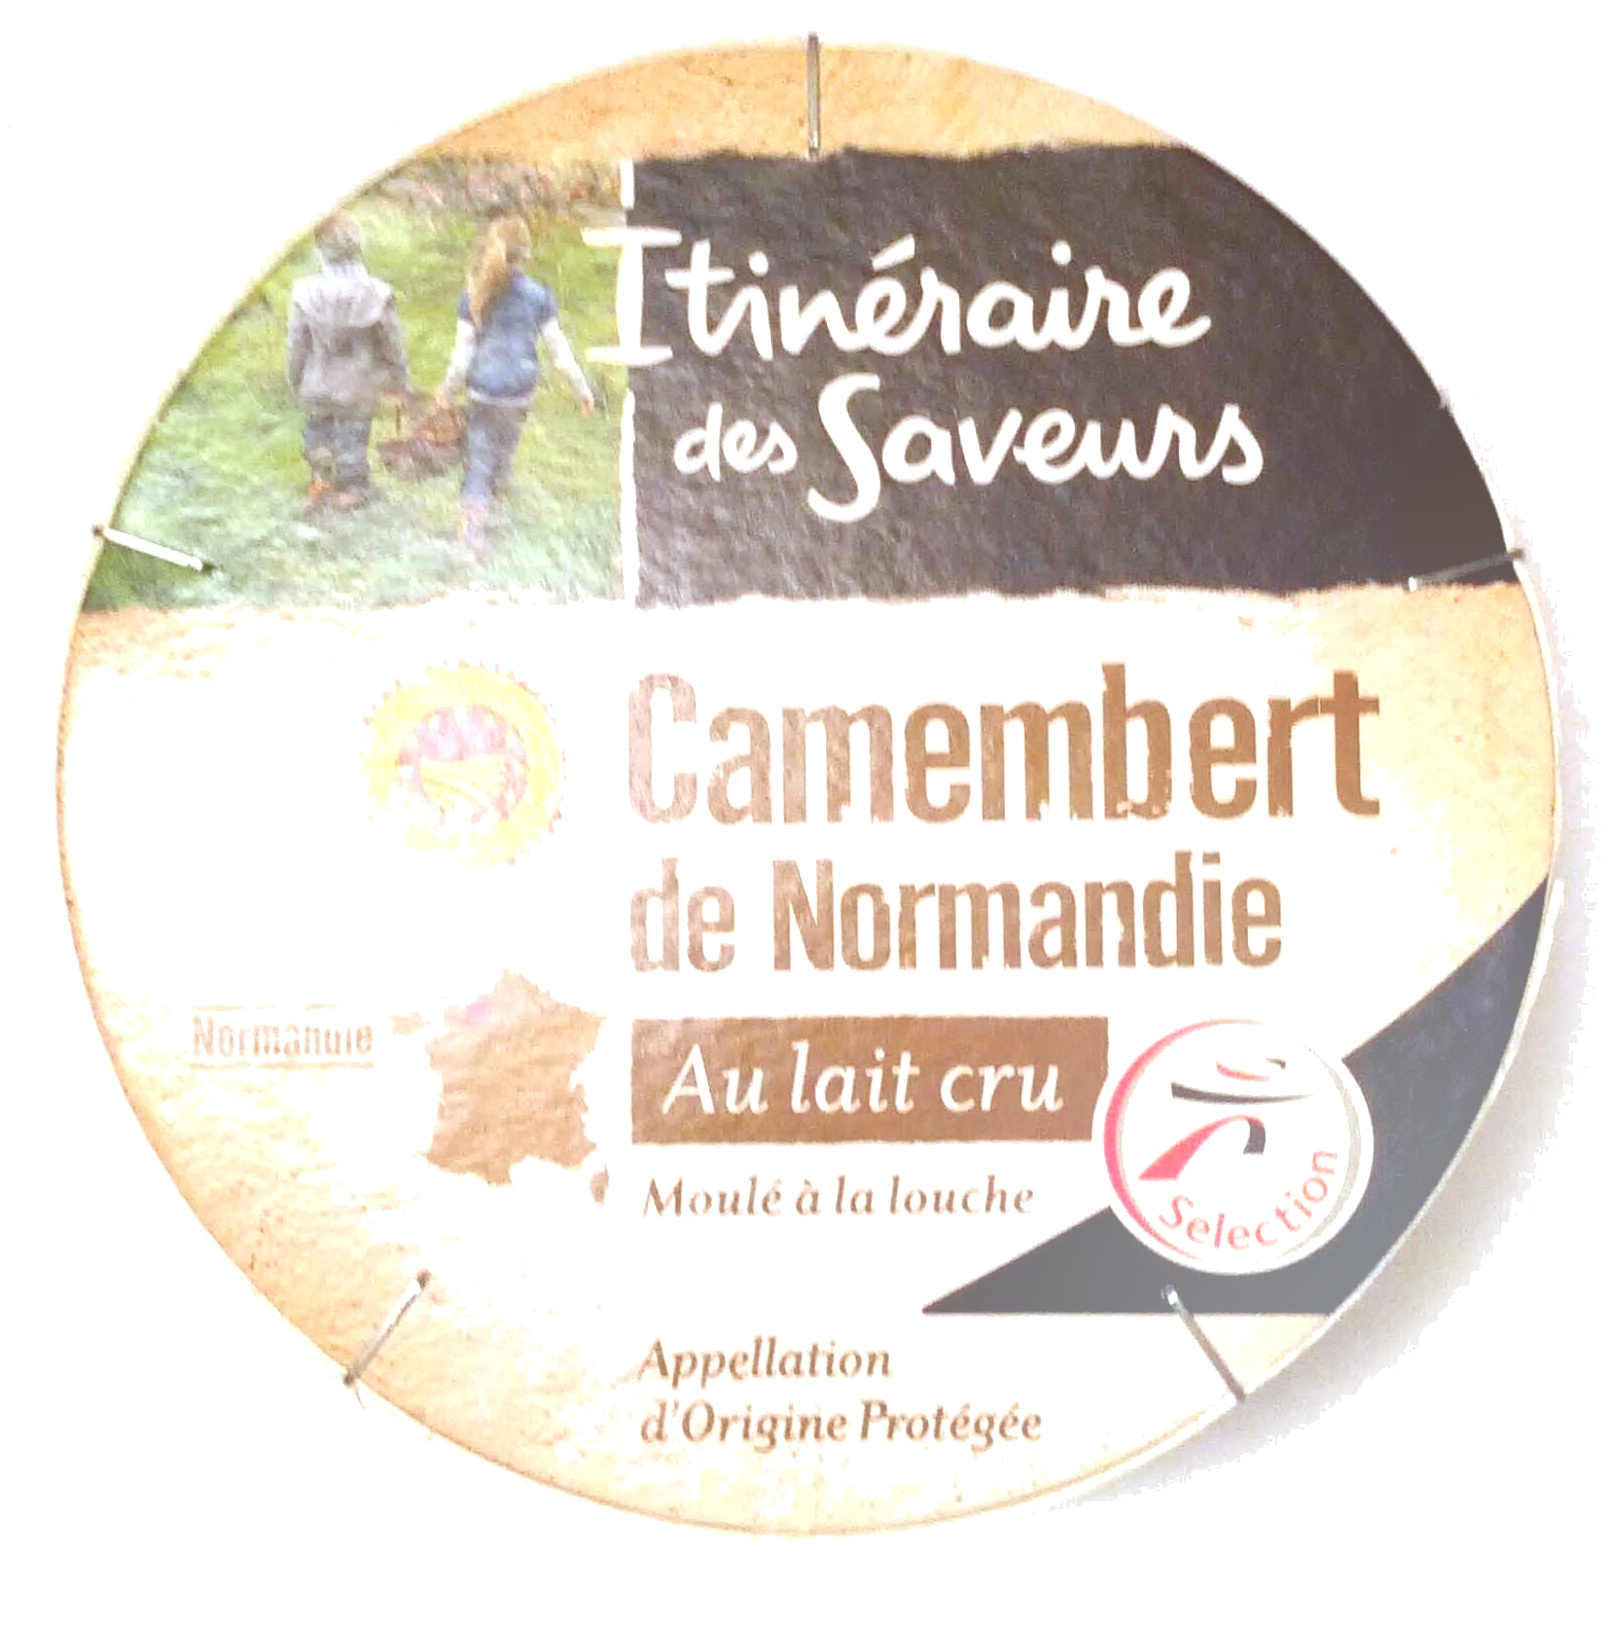 Camembert de Normandie au lait cru - Product